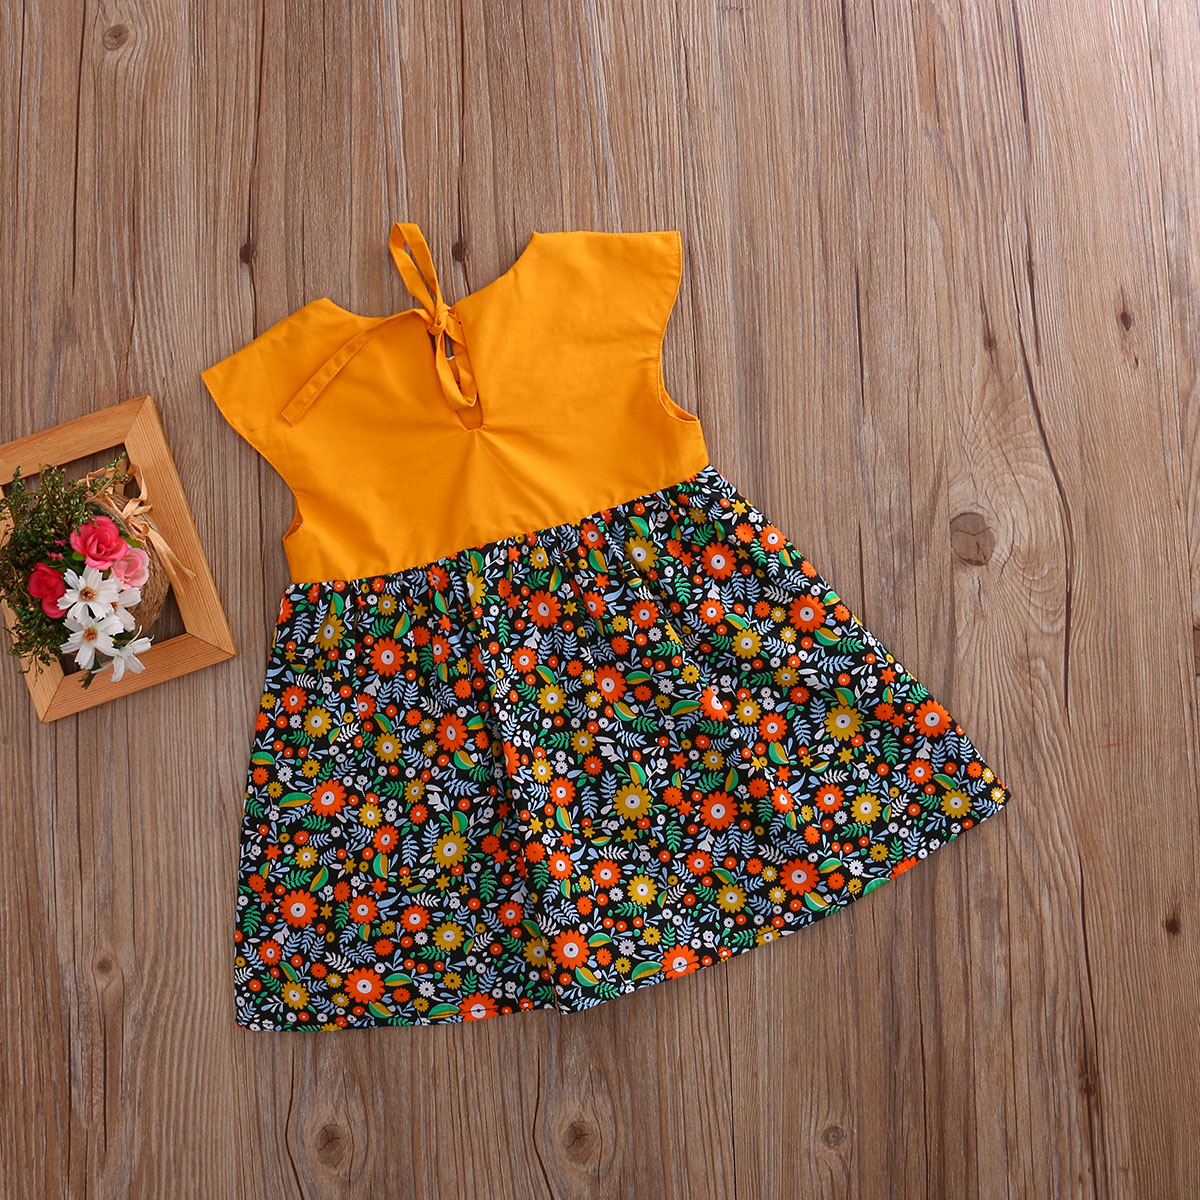 Bohemian-Floral-Toddler-Baby-Kids-Girls-Summer-Lace-Flower-Sundress-Party-Dress-Clothes-0-4T-5